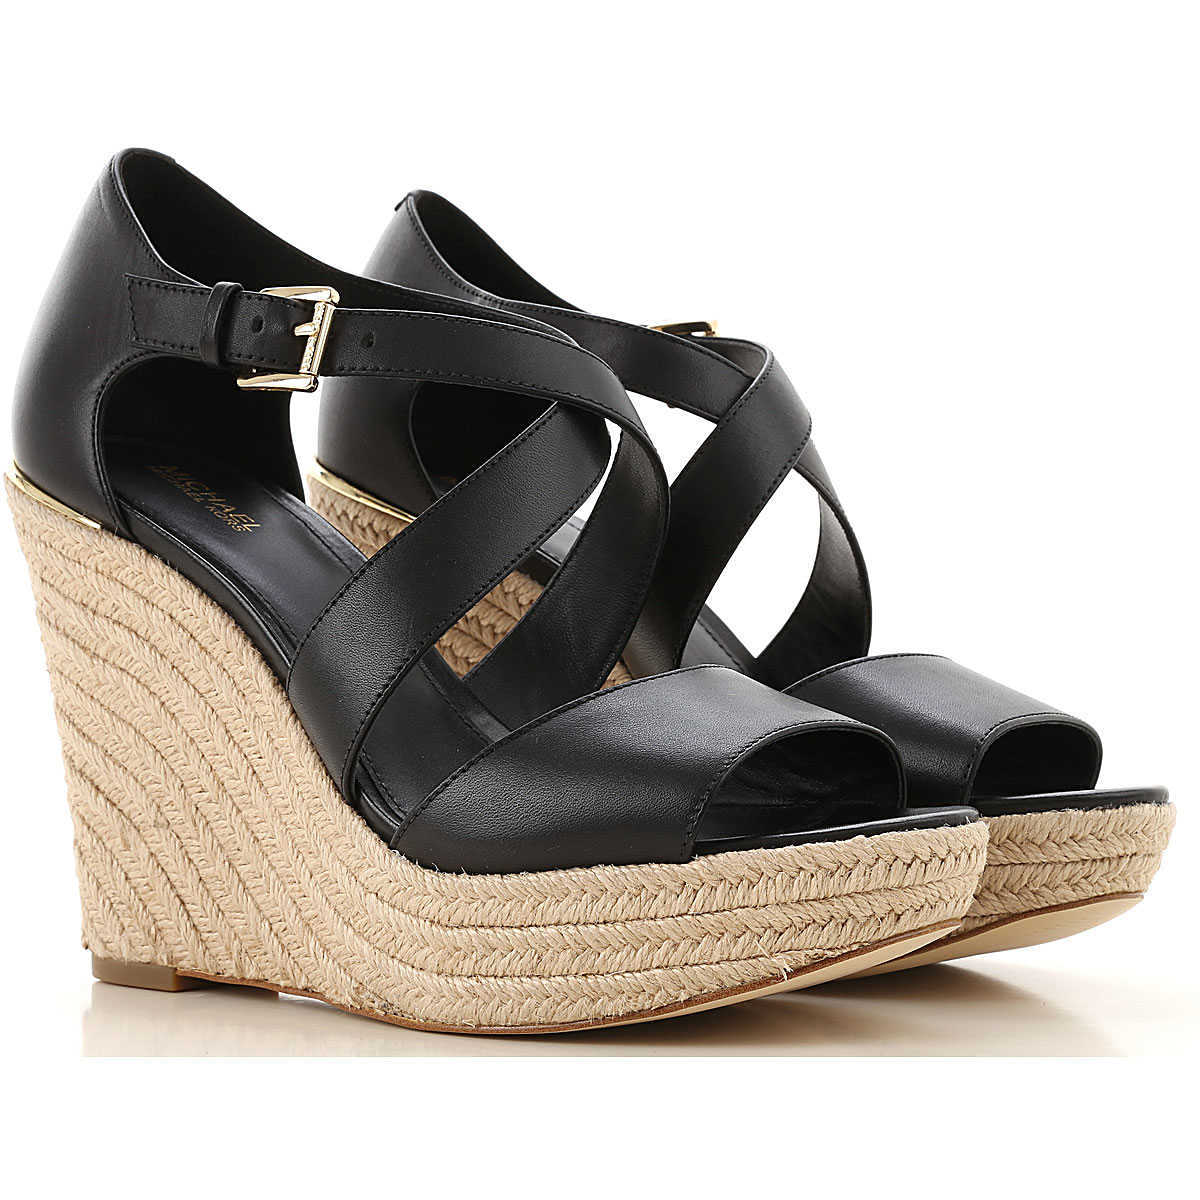 Michael Kors Wedges for Women Black Canada - GOOFASH - Womens HOUSE SHOES